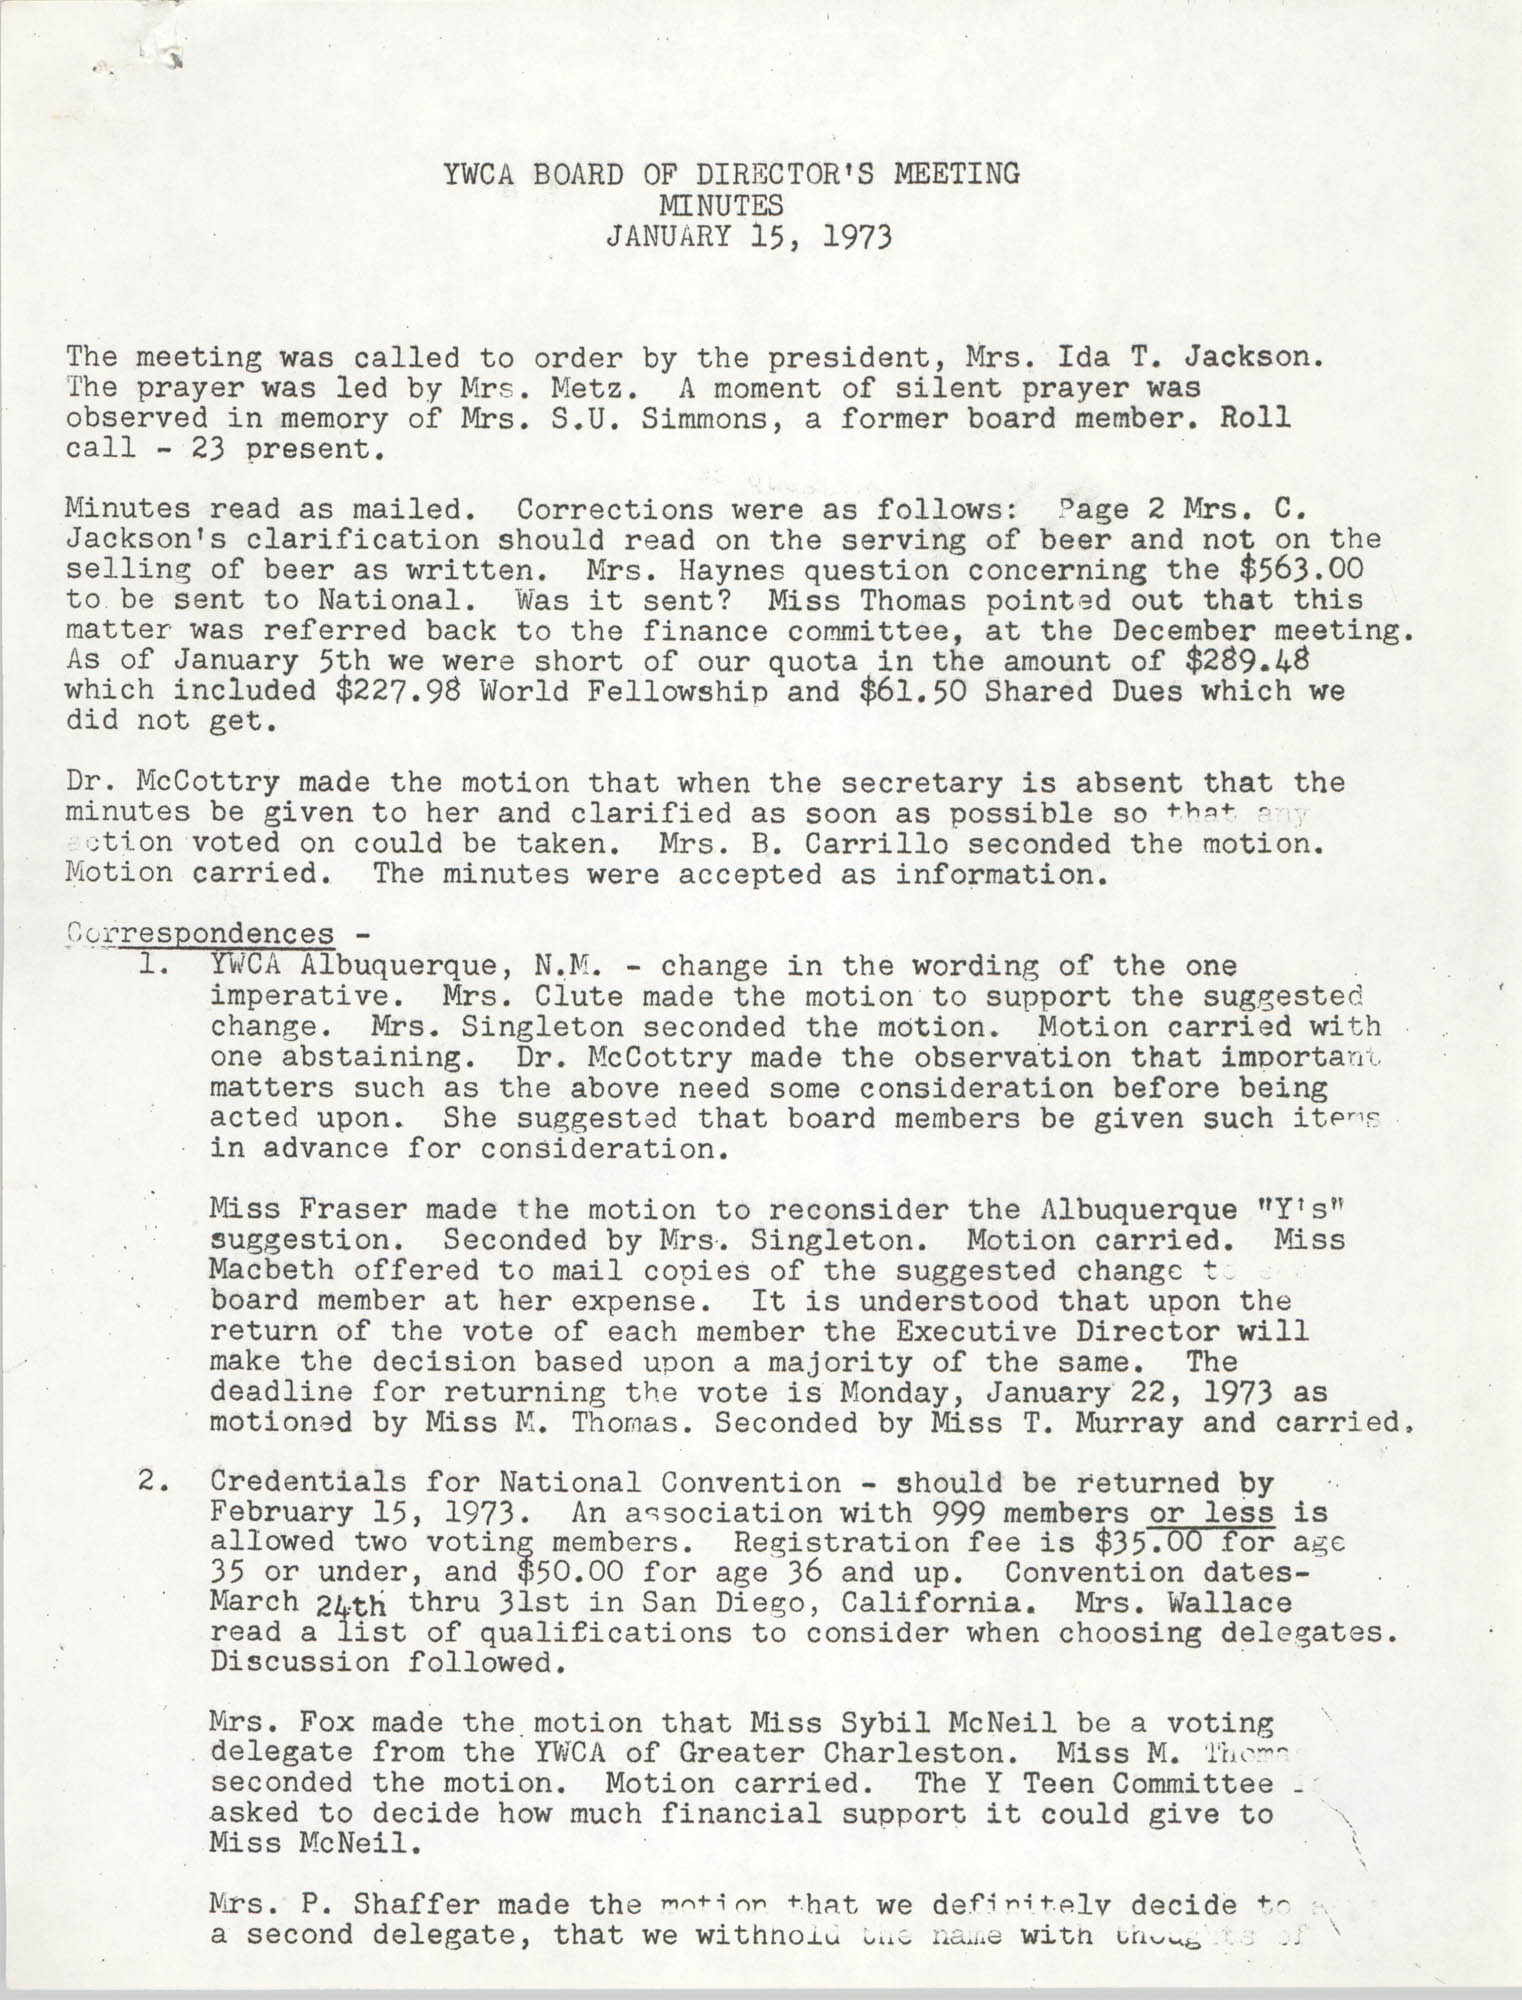 Minutes to the Y.W.C.A. Board of Director's Meeting, January 15, 1973